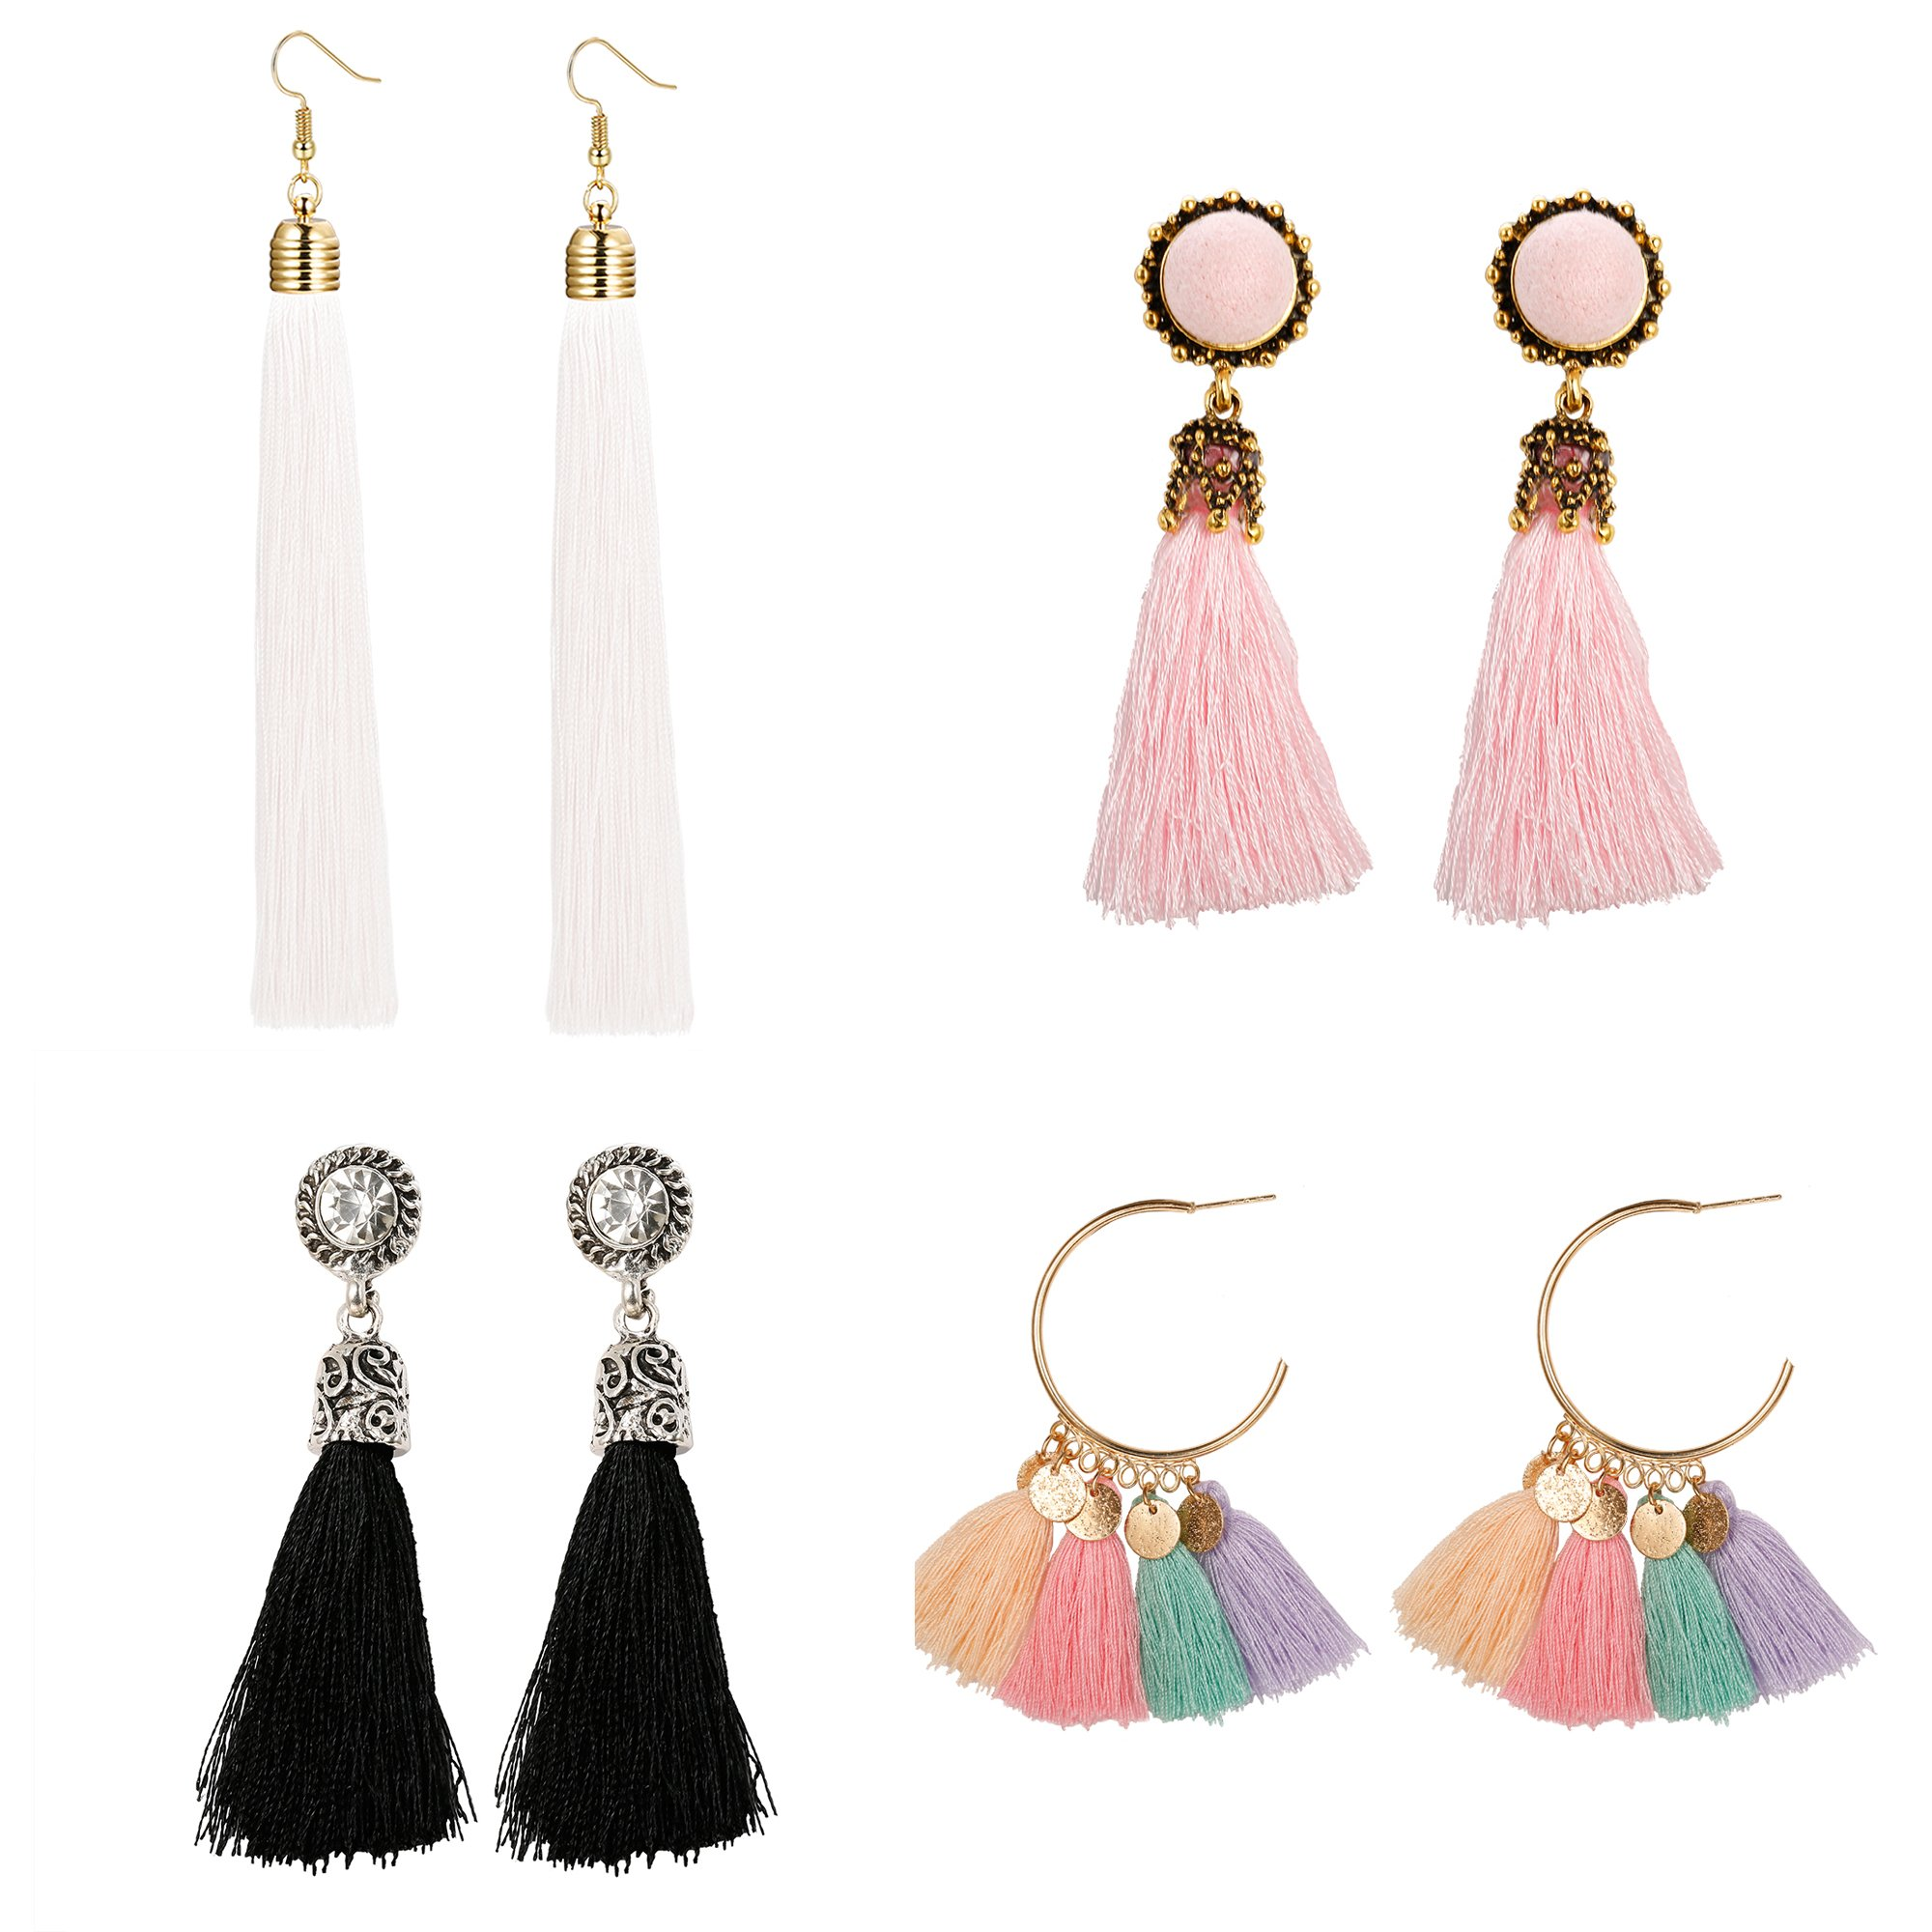 Milacolato 4 Pairs Long Tassel Earrings for Women Girls Dangle Boho Earrings Gold Hoop Bohemian Retro Vintage Assorted Multiple Mixed White L